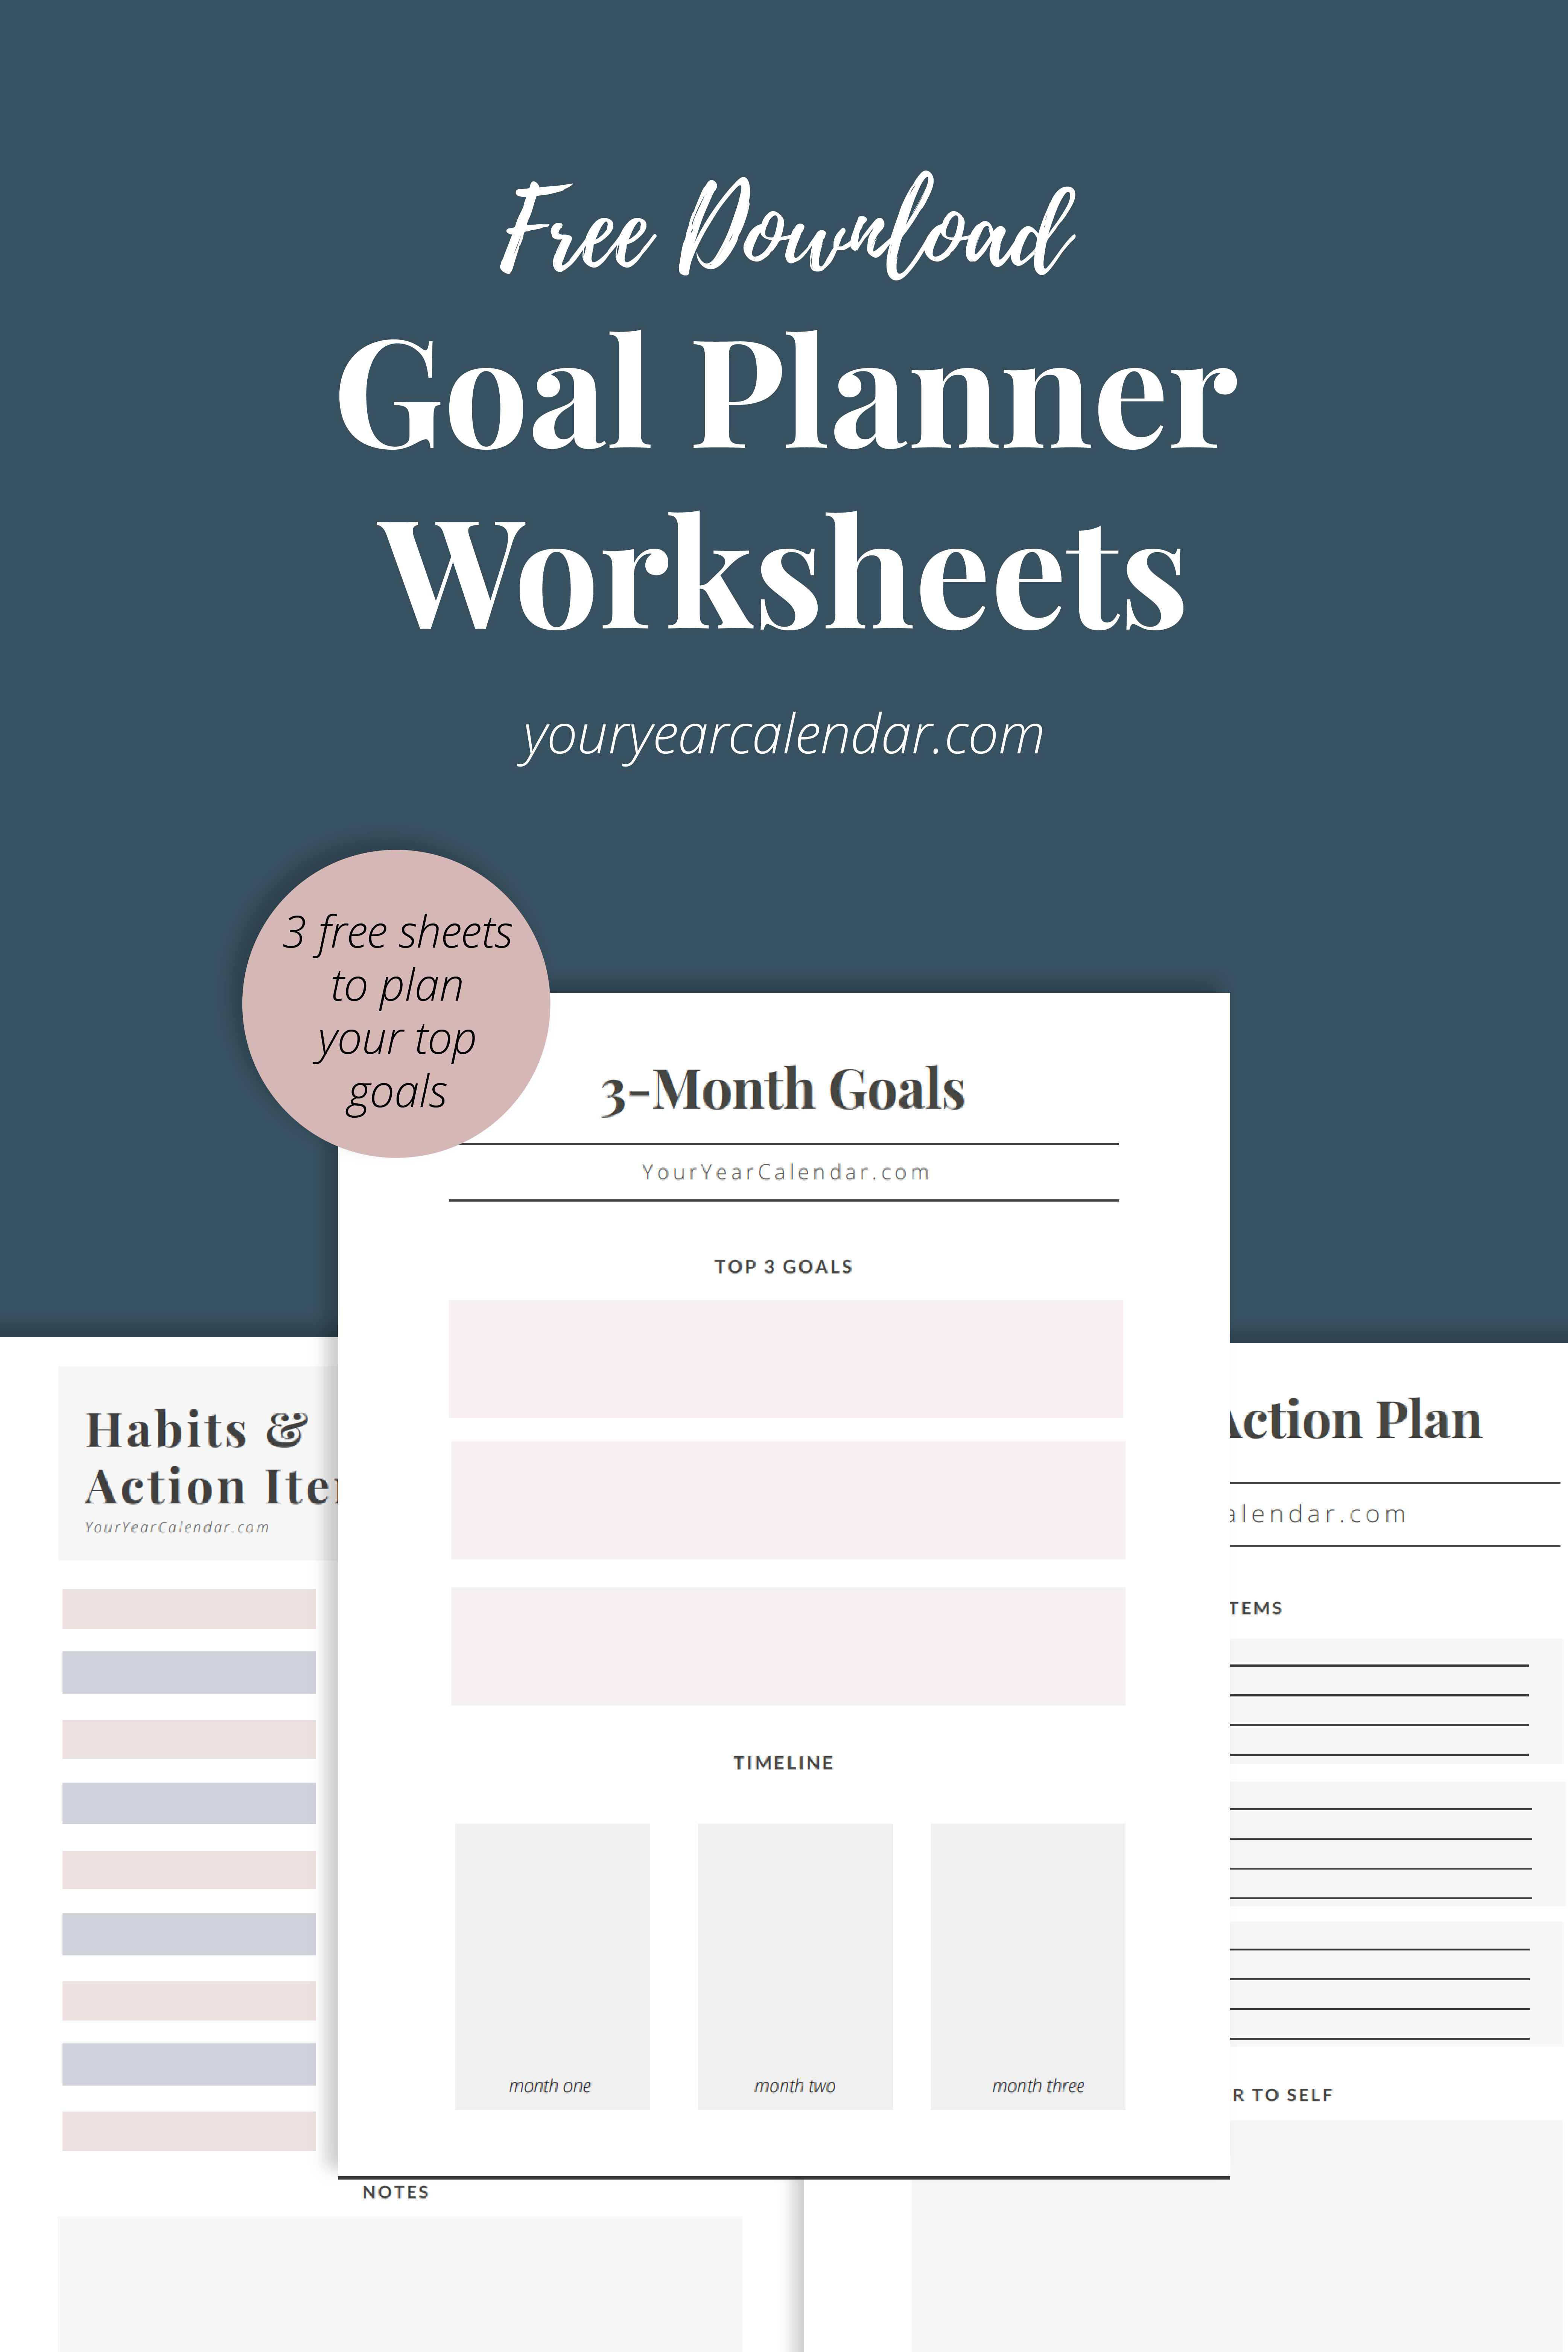 Free Goal Planning Worksheets In